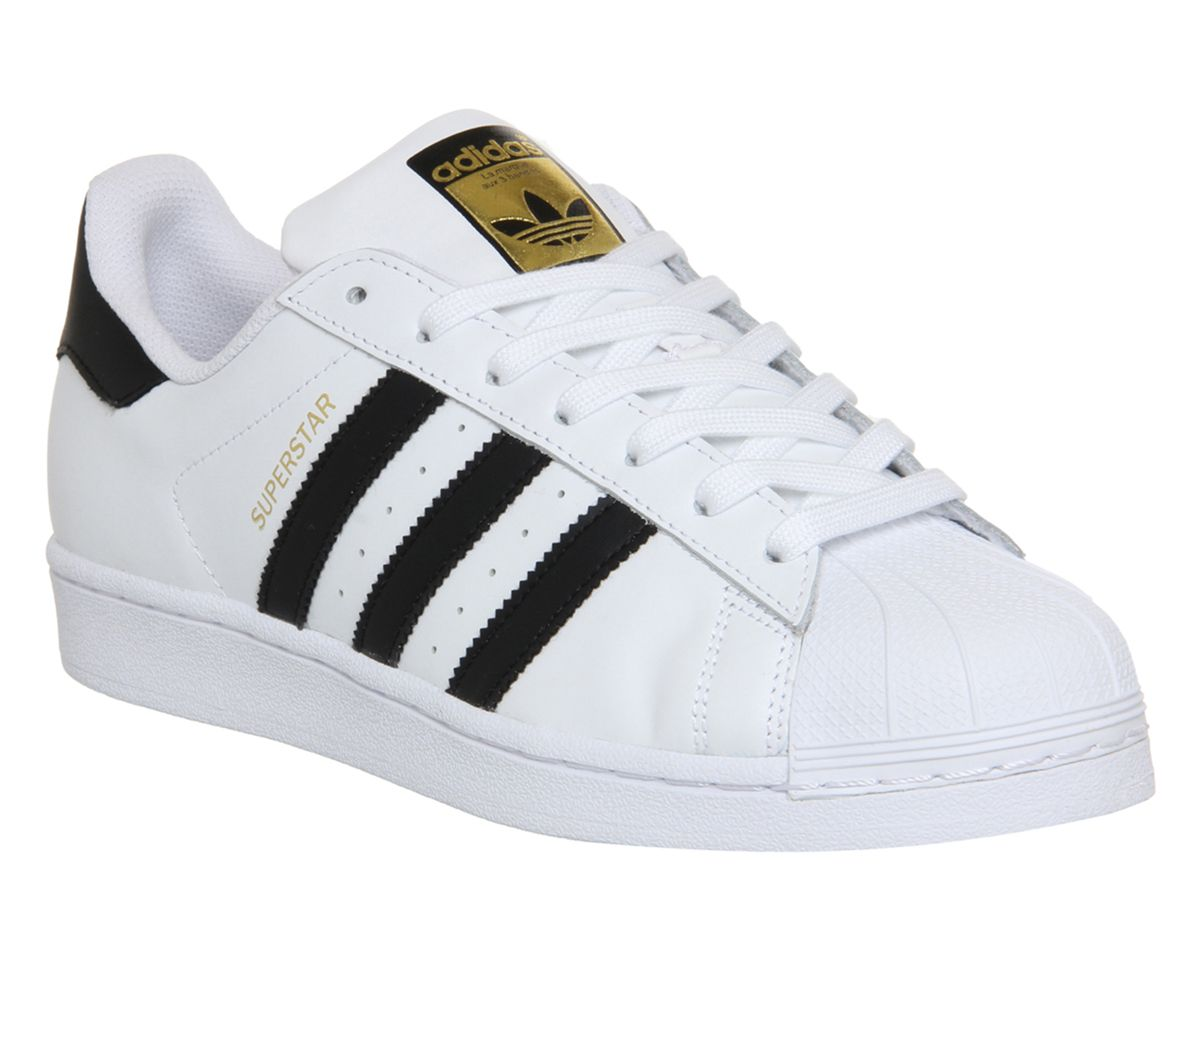 33d2927f39e adidas Superstar 1 White Black Foundation - Unisex Sports